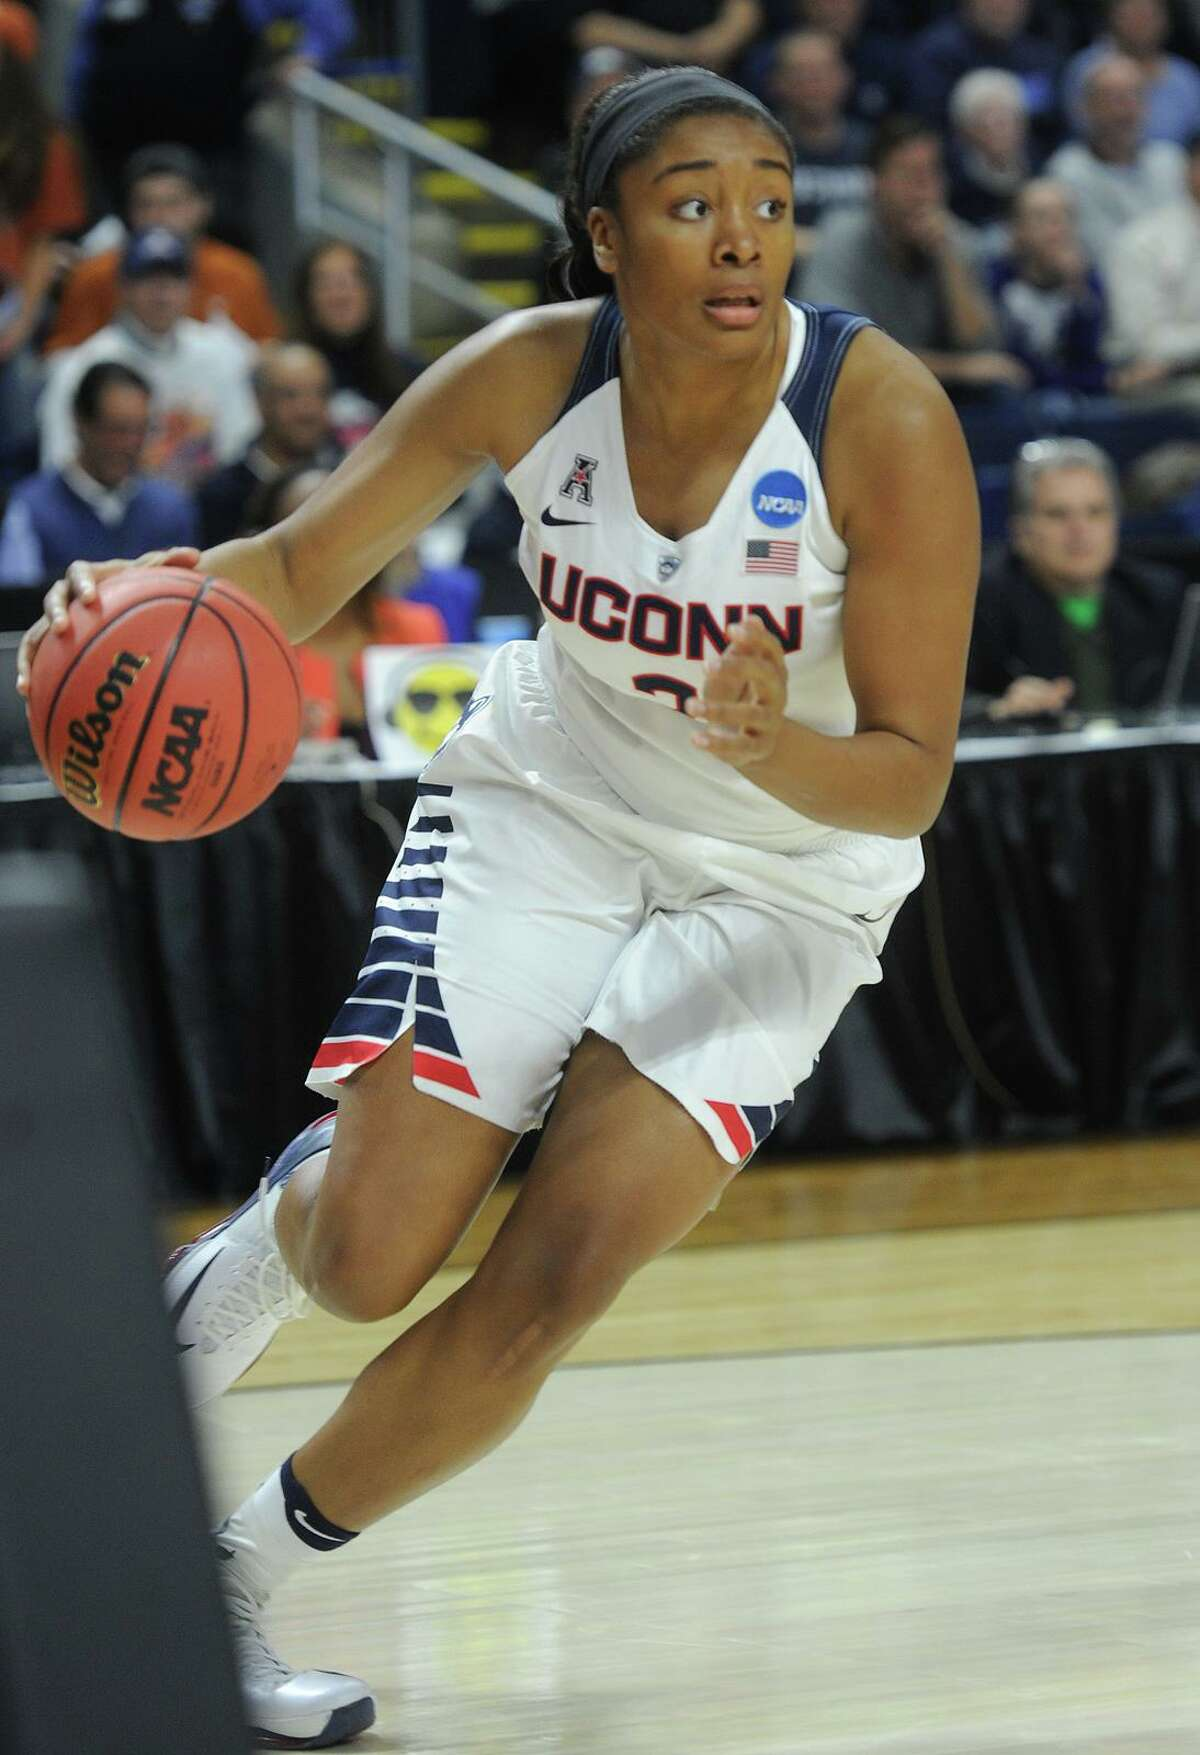 UConn's Morgan Tuck in action against Texas during the NCCA Regional championship at the Webster Bank Arena in Bridgeport in 2016.